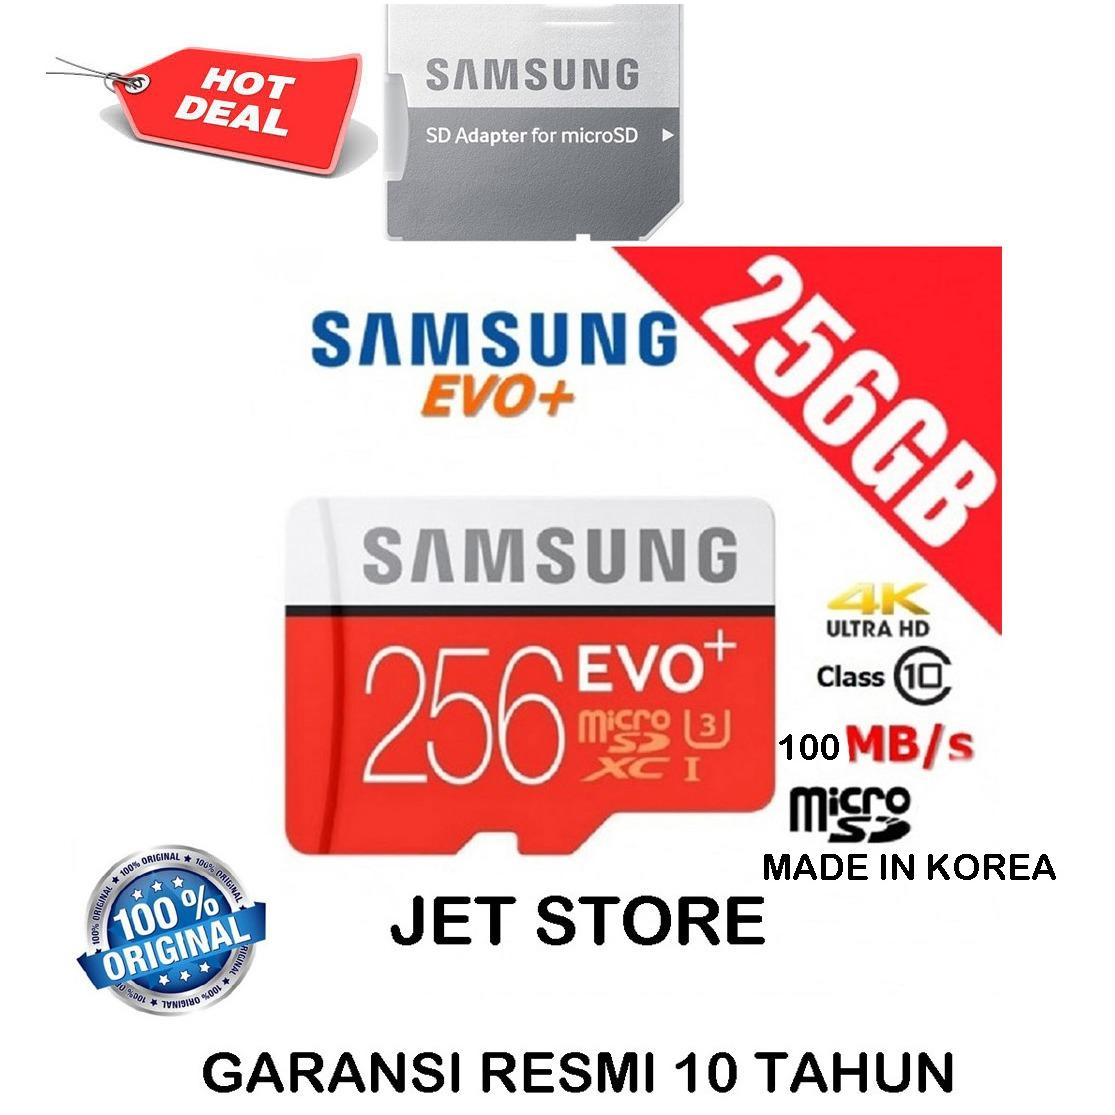 Harga Samsung Memory Card Microsdxc Evo Plus 256Gb 100Mb S With Adapter Merah Terbaik